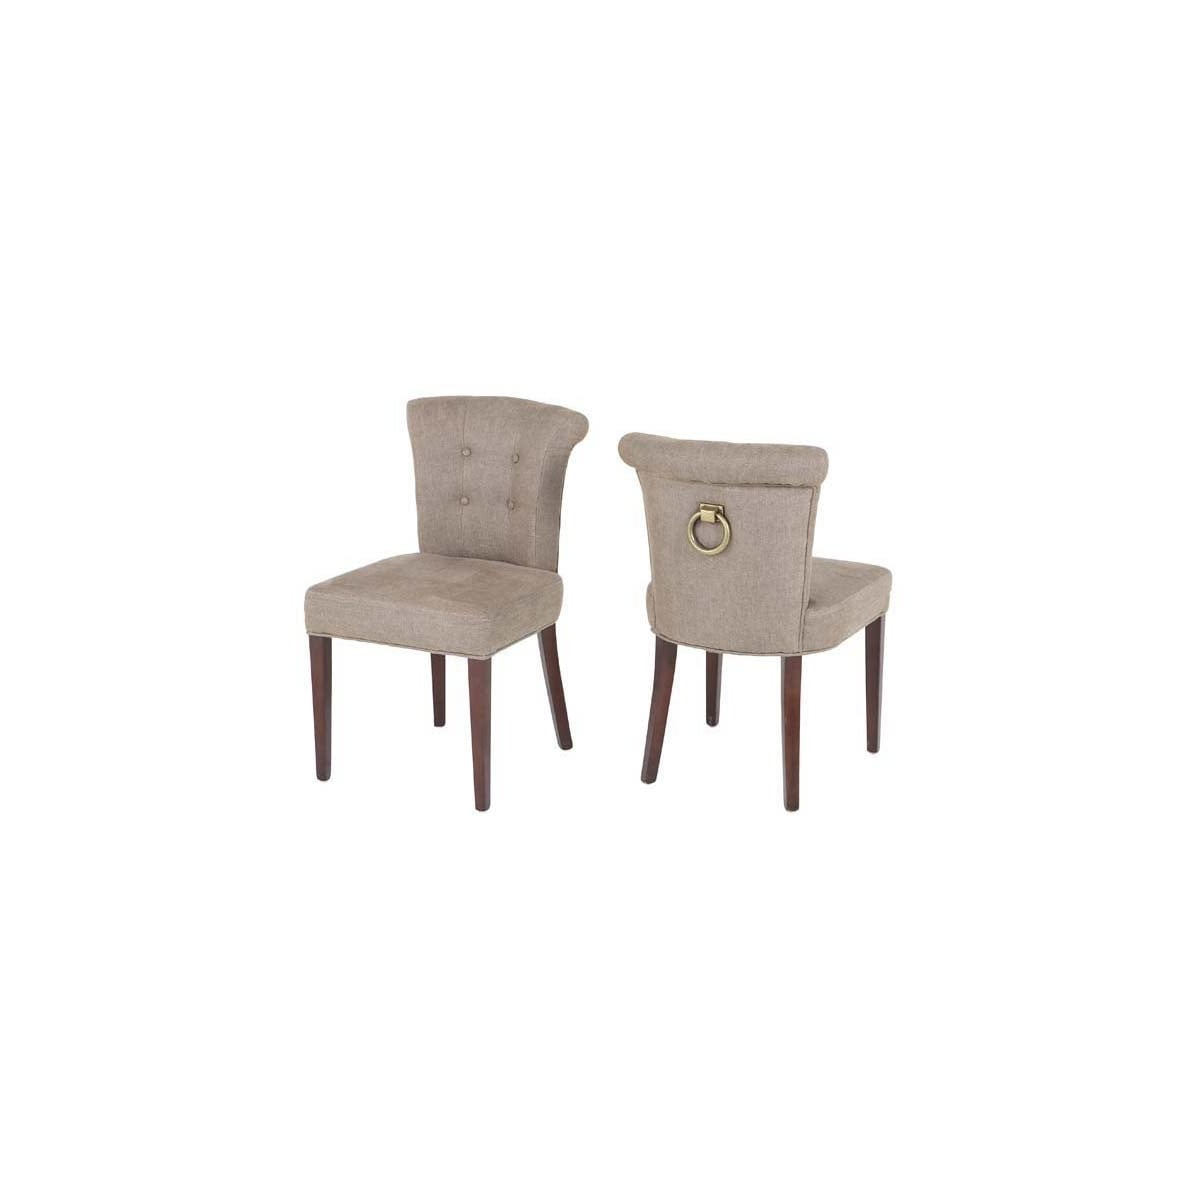 Attractive Eichholtz Ring Back Dining Chair, Linen | Swanky Interiors EC56